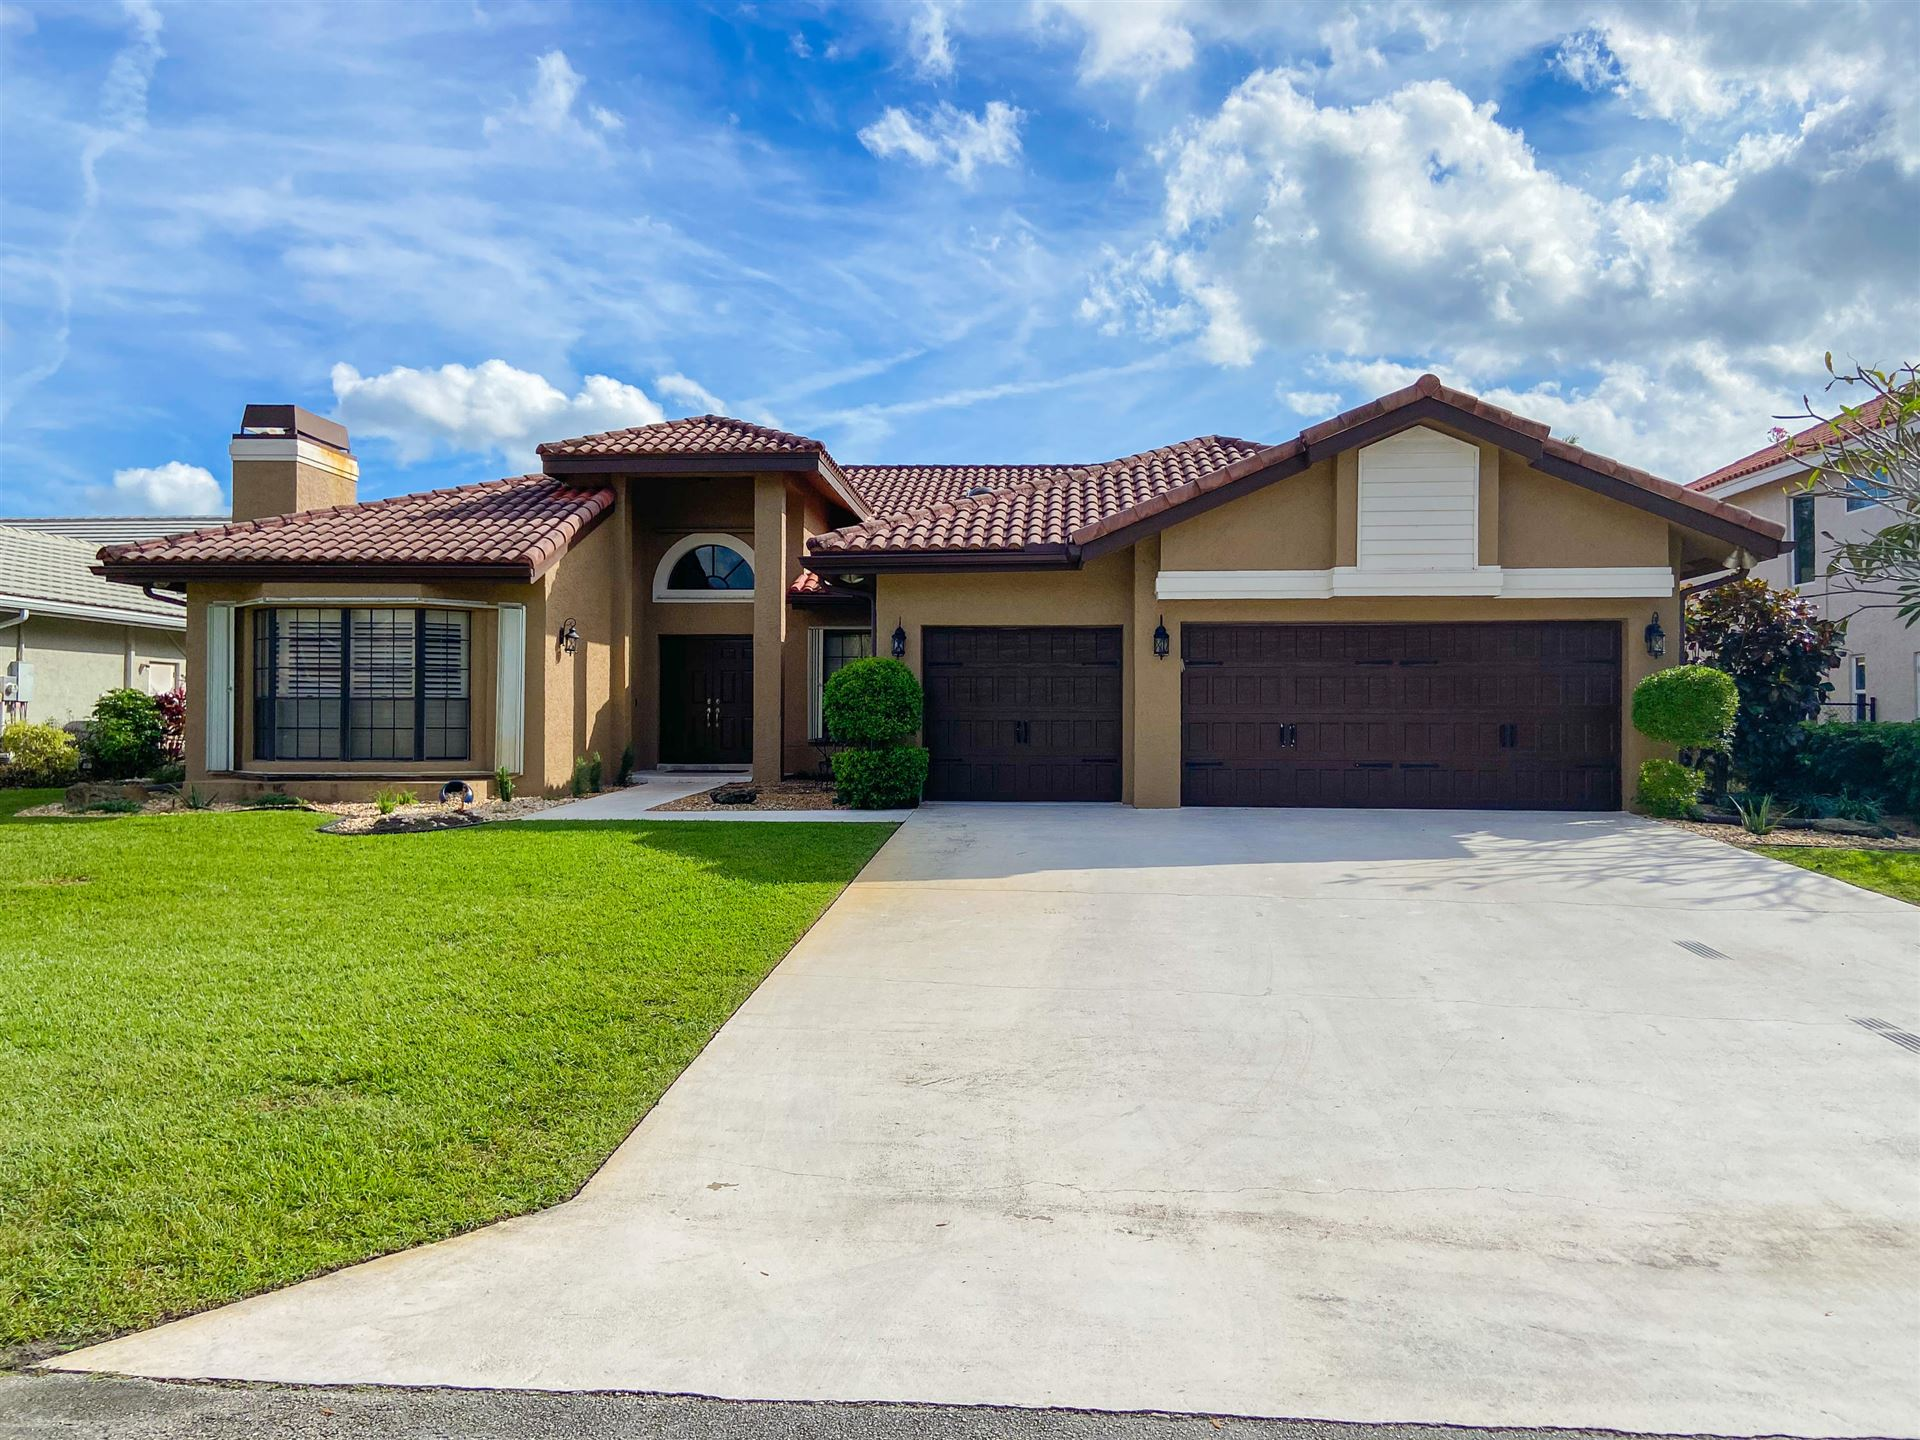 Photo of 6020 NW 62nd Court, Parkland, FL 33067 (MLS # RX-10674881)